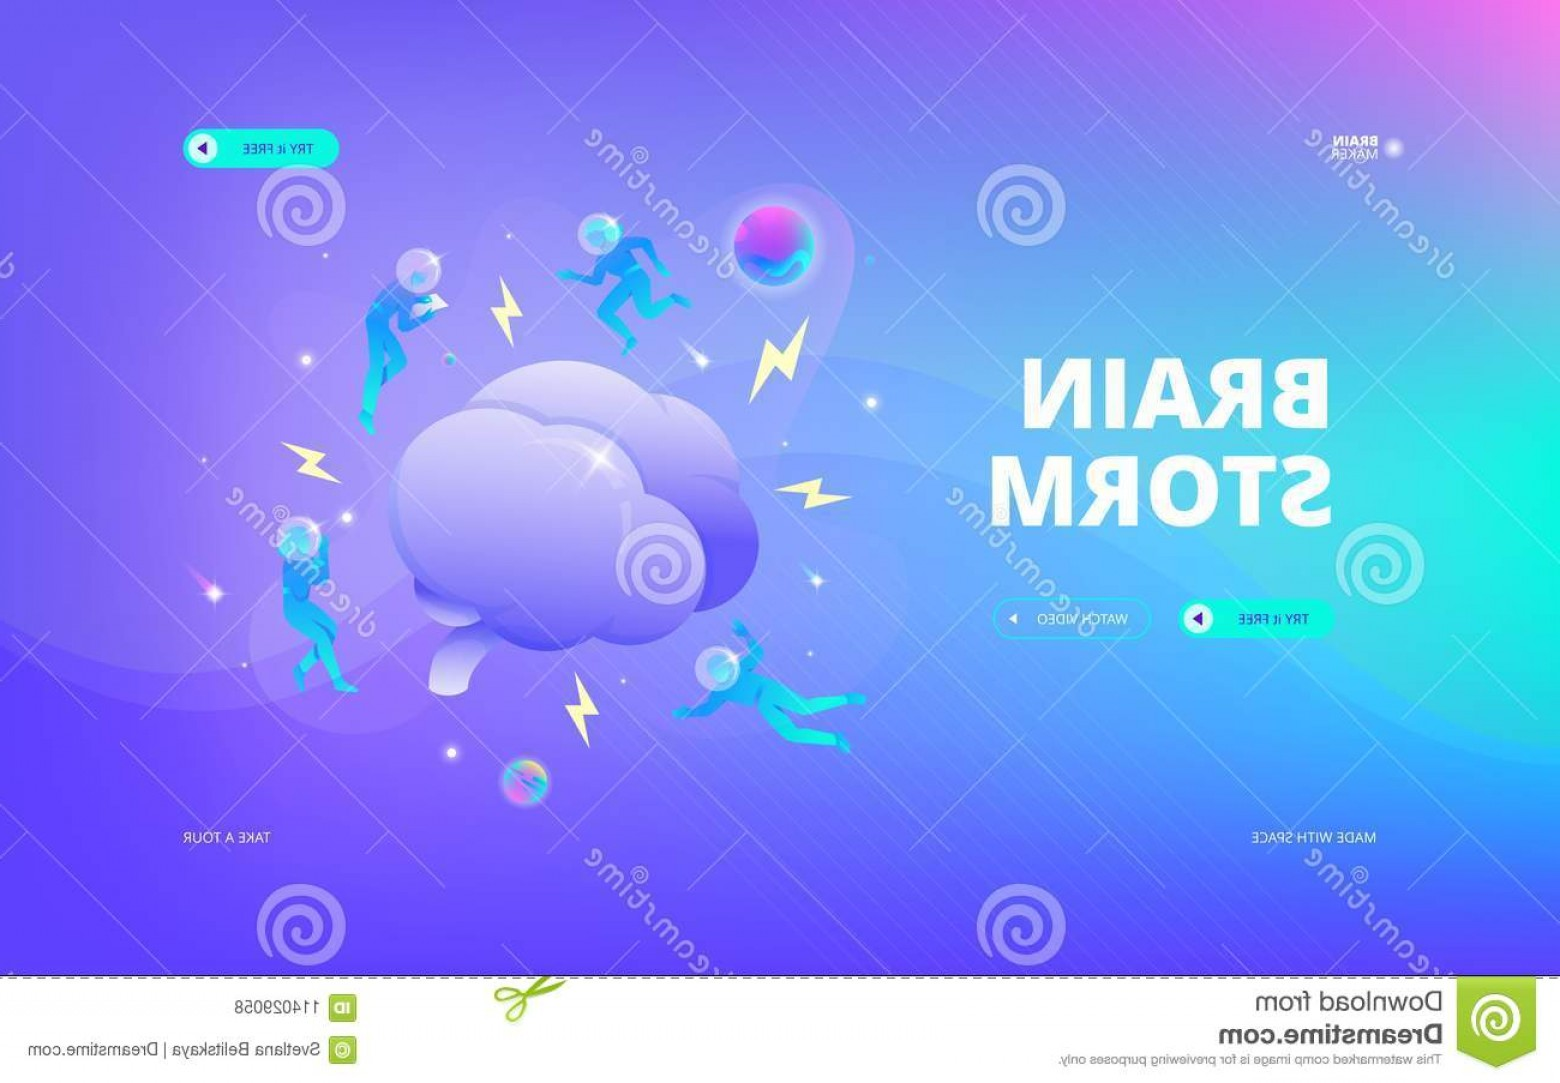 The Storm Vector Layout System: Brain Storm Web Banner Vector Illustration Developers Spacesuits Floating Around Big Space Hero Image Design Concept Image